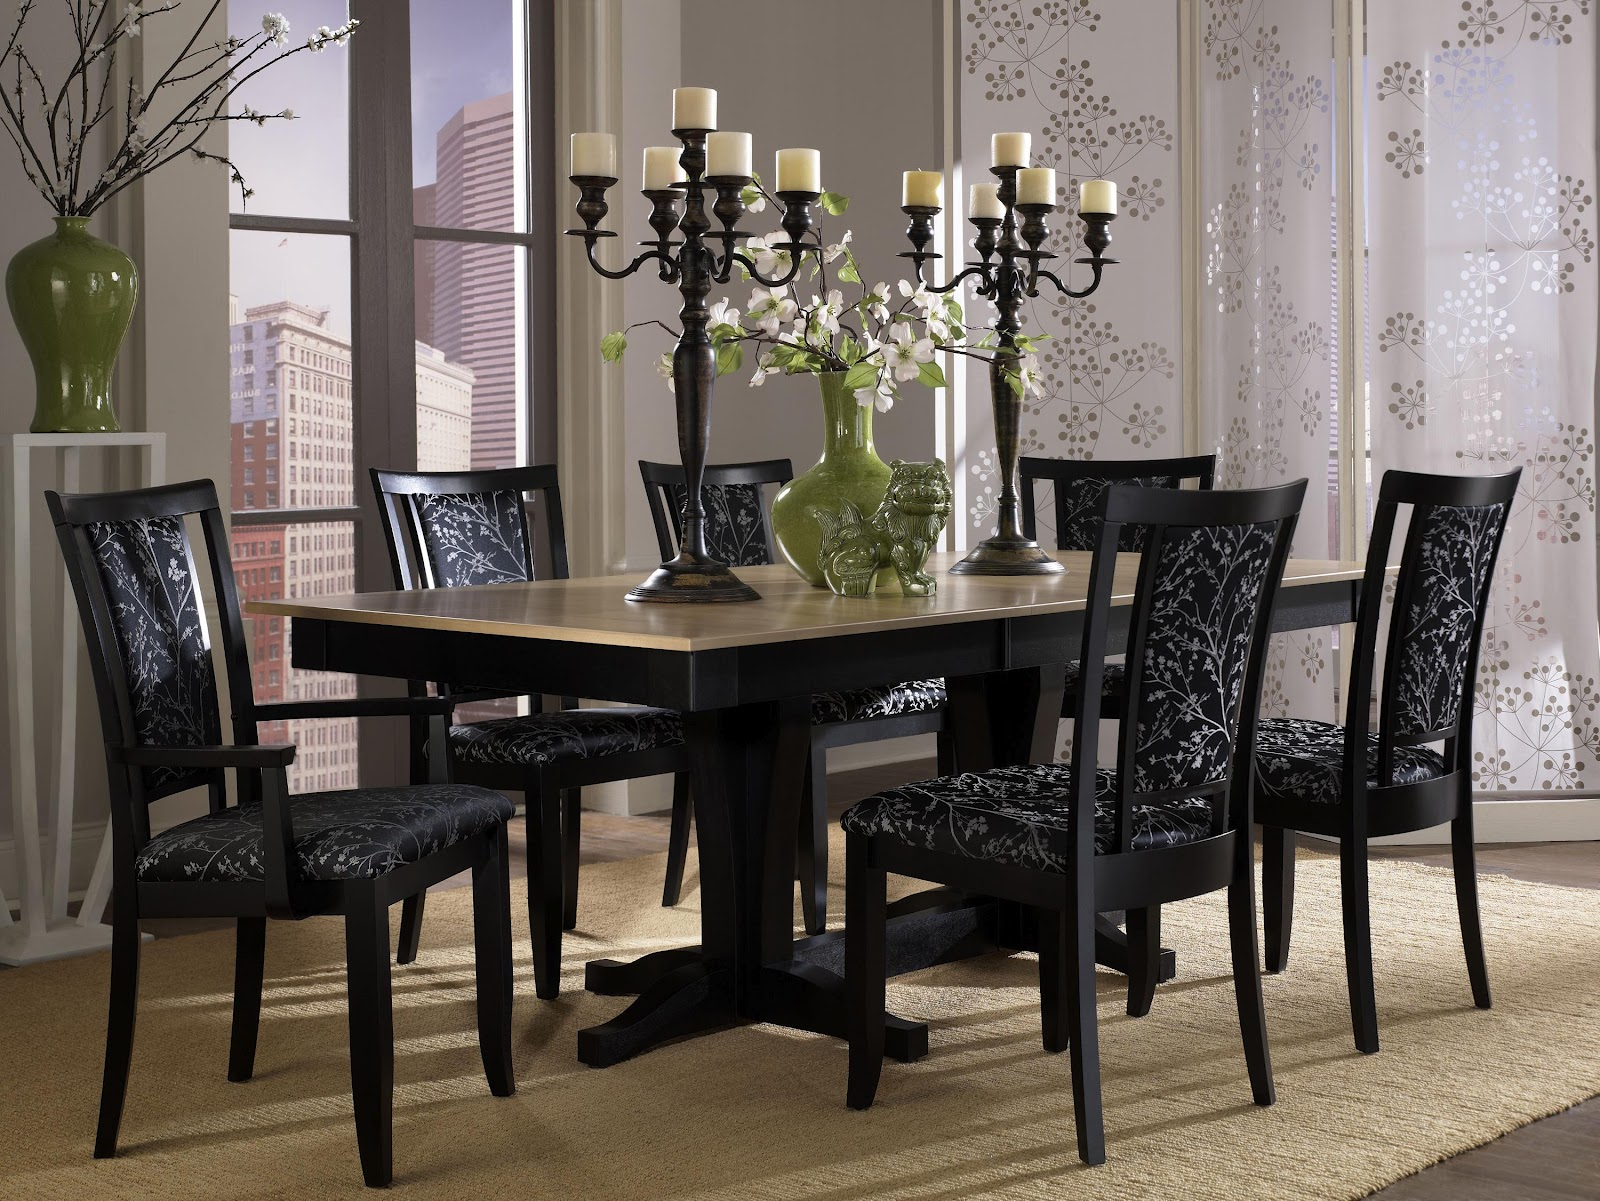 Canadel dining room sets new york dining room unique for Contemporary dining set